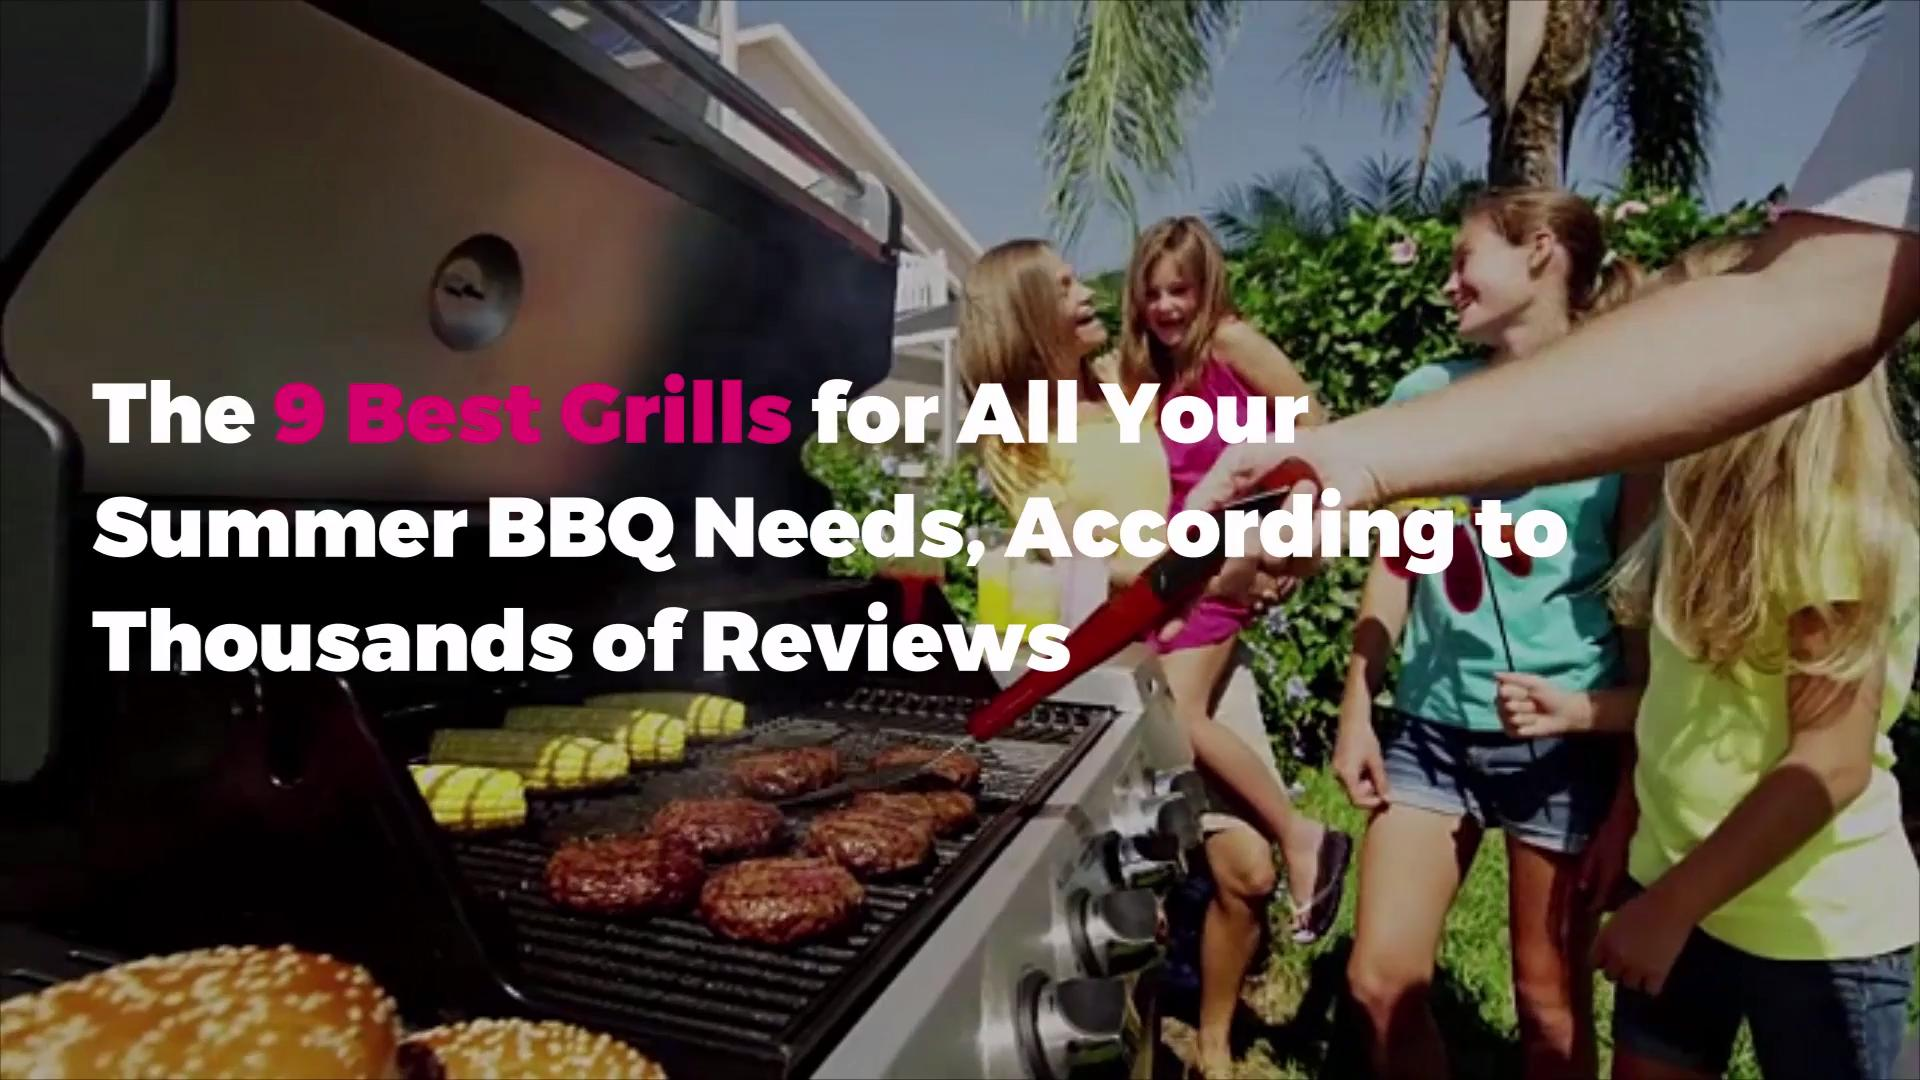 The 9 Best Grills for All Your Summer BBQ Needs, According to